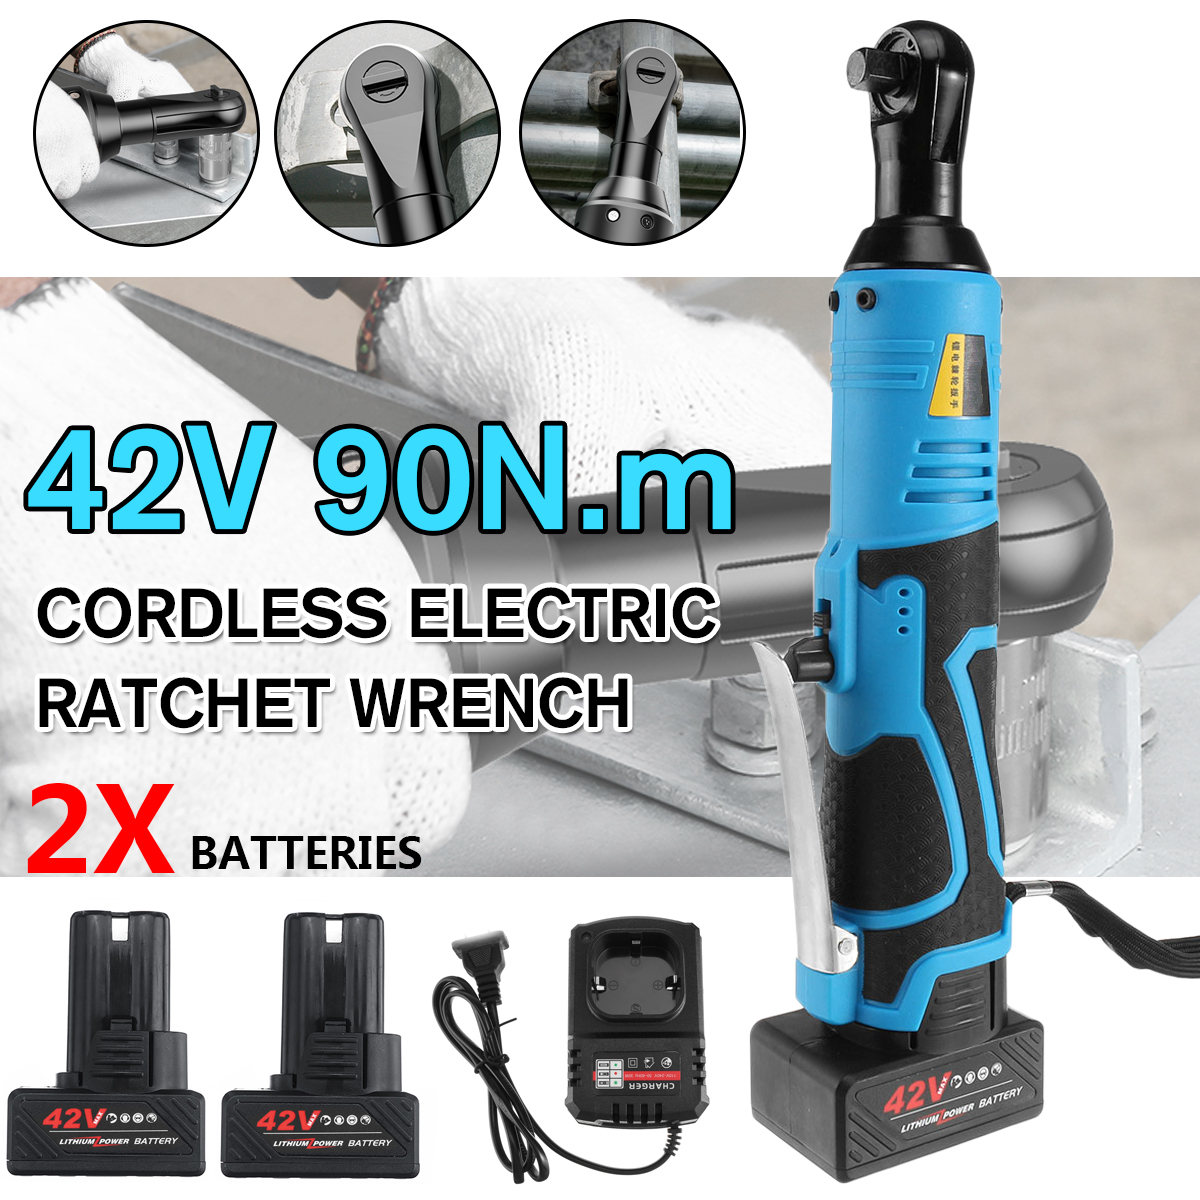 42V Electric Wrench Cordless Ratchet Rechargeable Scaffolding 90N m 3 8inch Right Angle Wrench Tool Kit with 1 2 Battery Charger